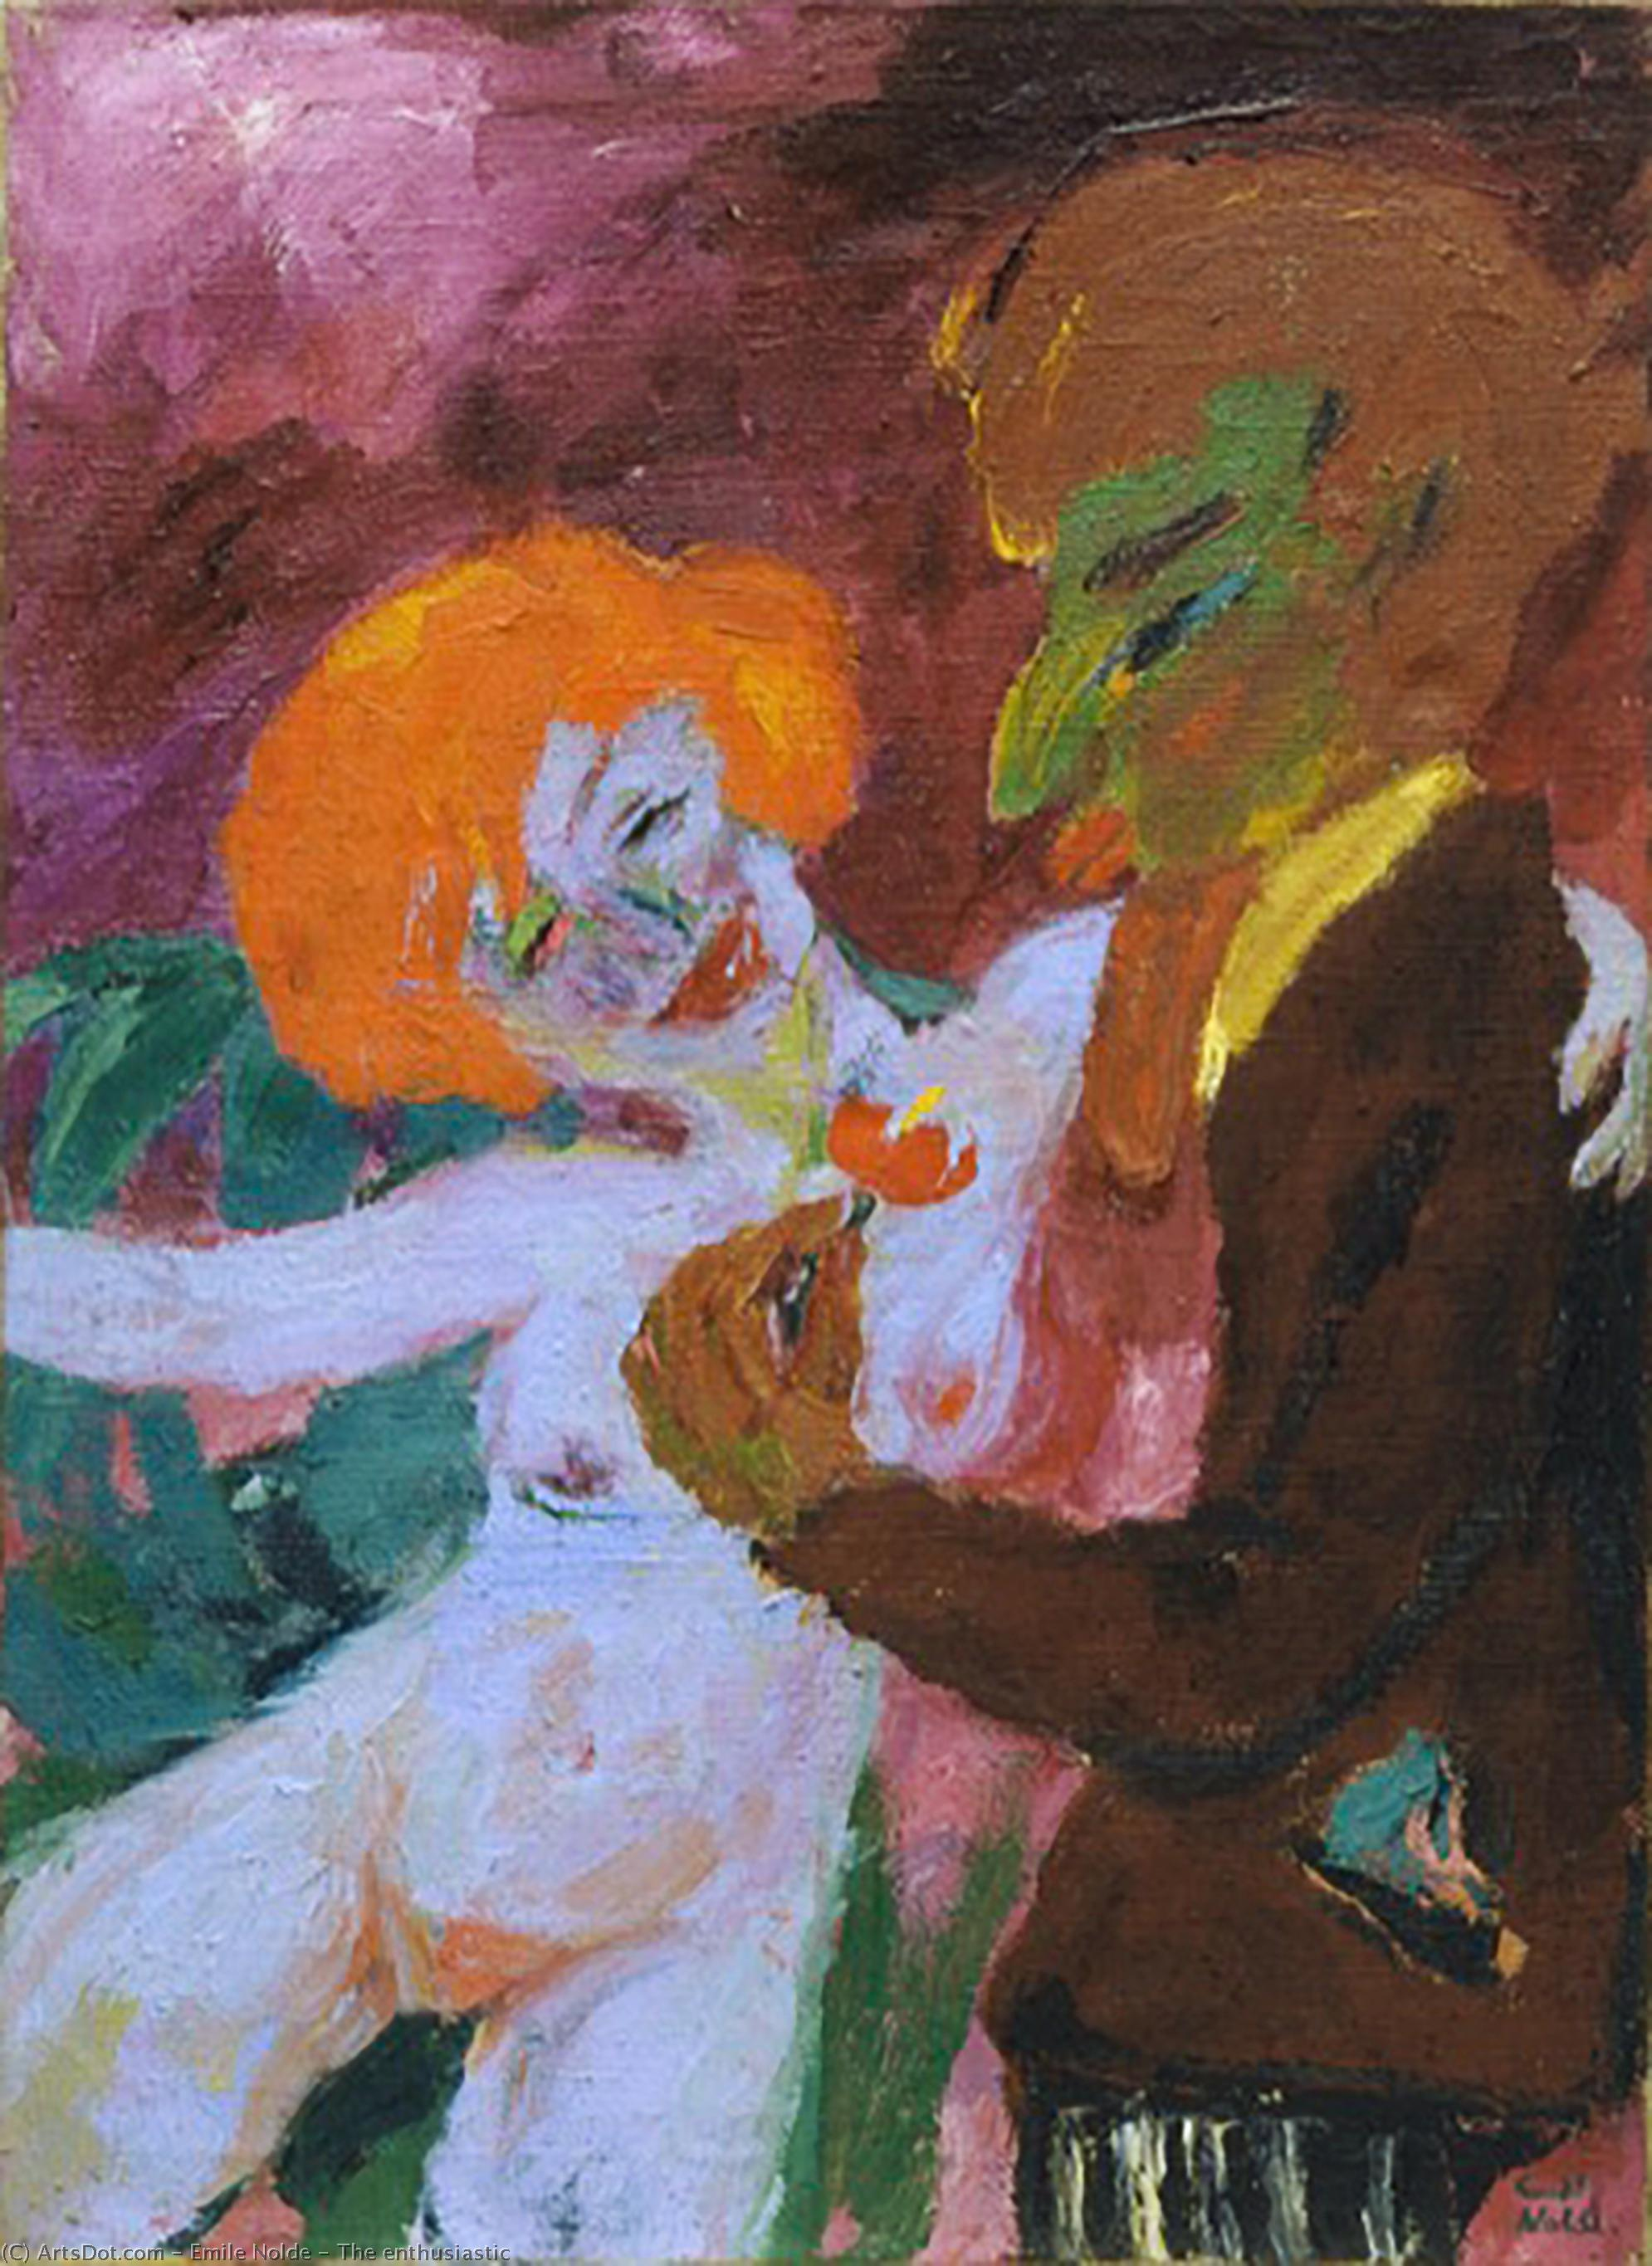 The enthusiastic by Emile Nolde (1867-1956, Germany)